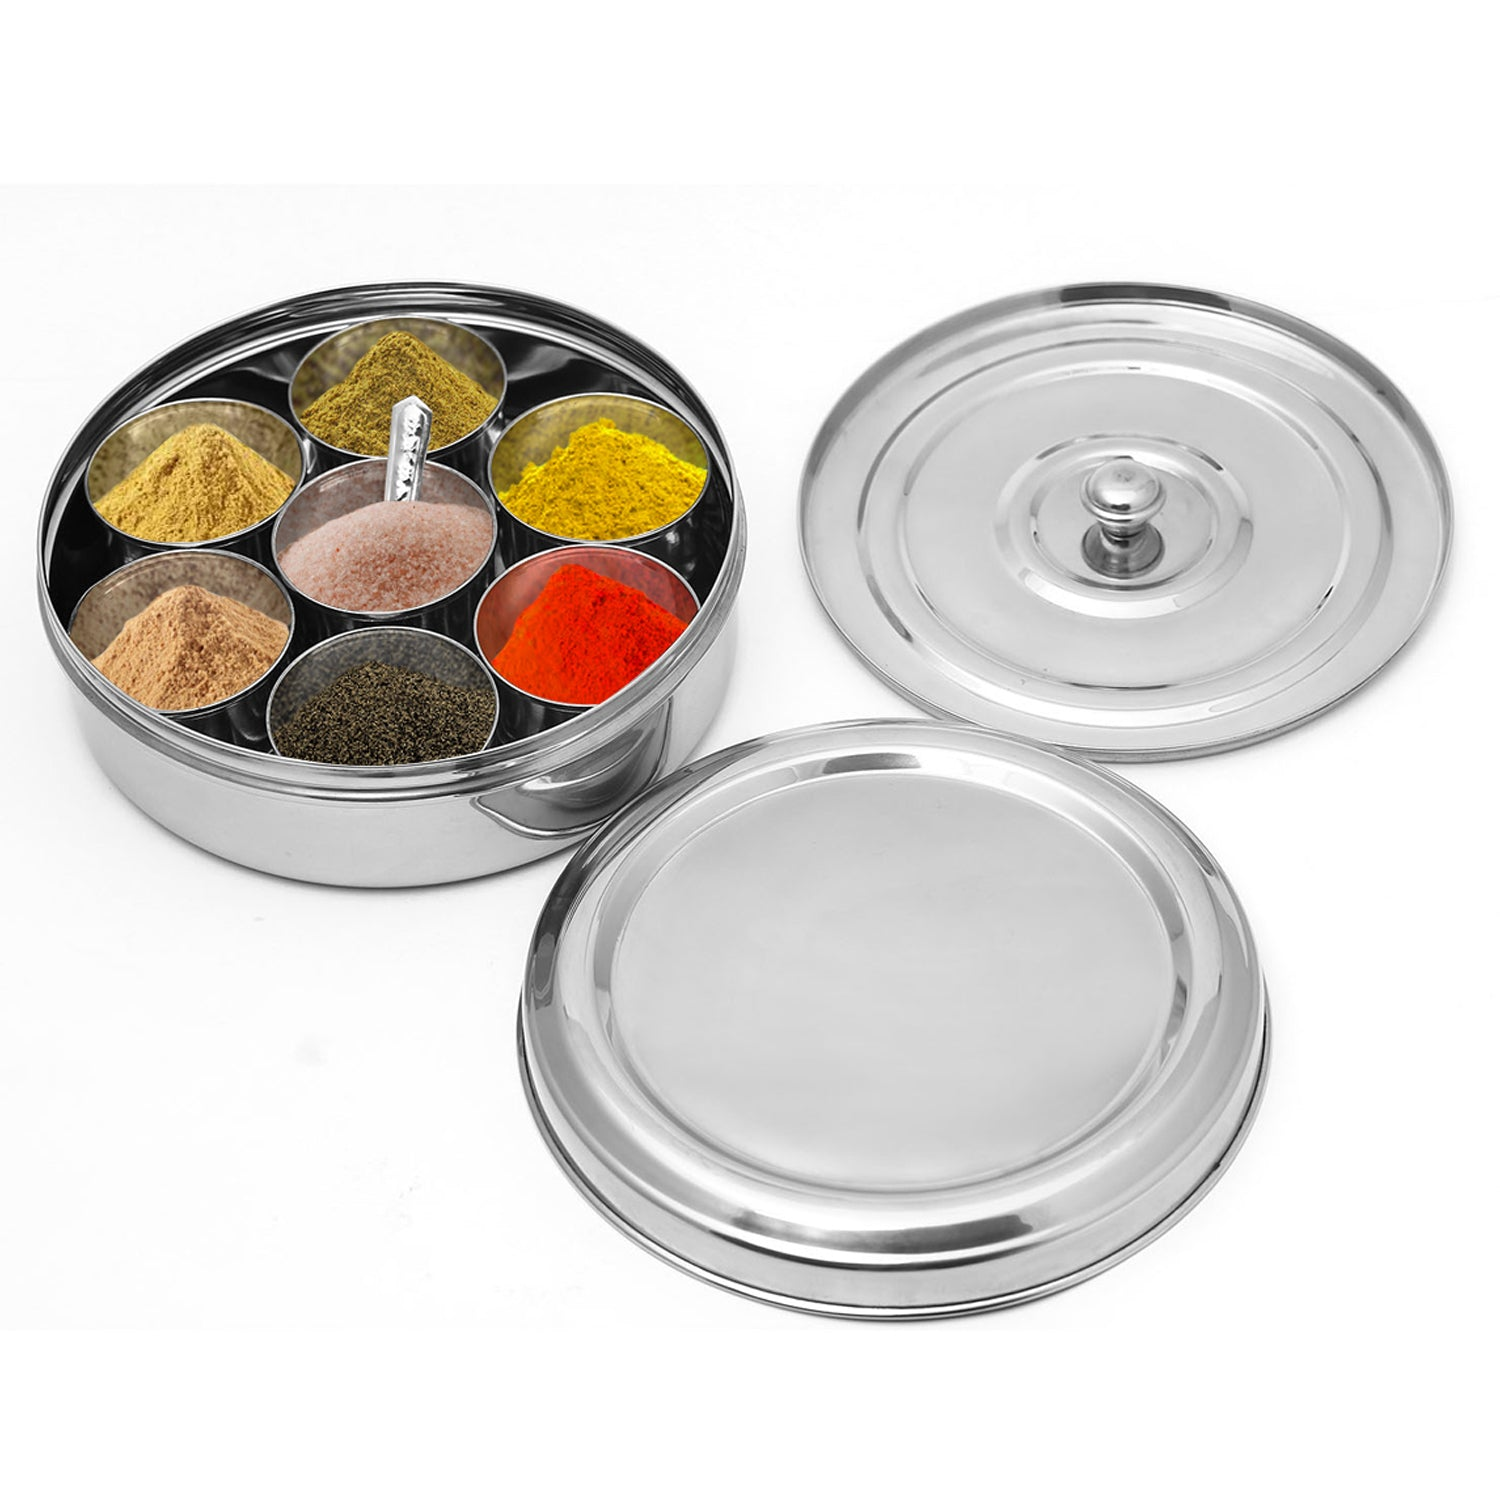 Stainless Steel Indian Spice Box with 7 Containers to stock countryside spices